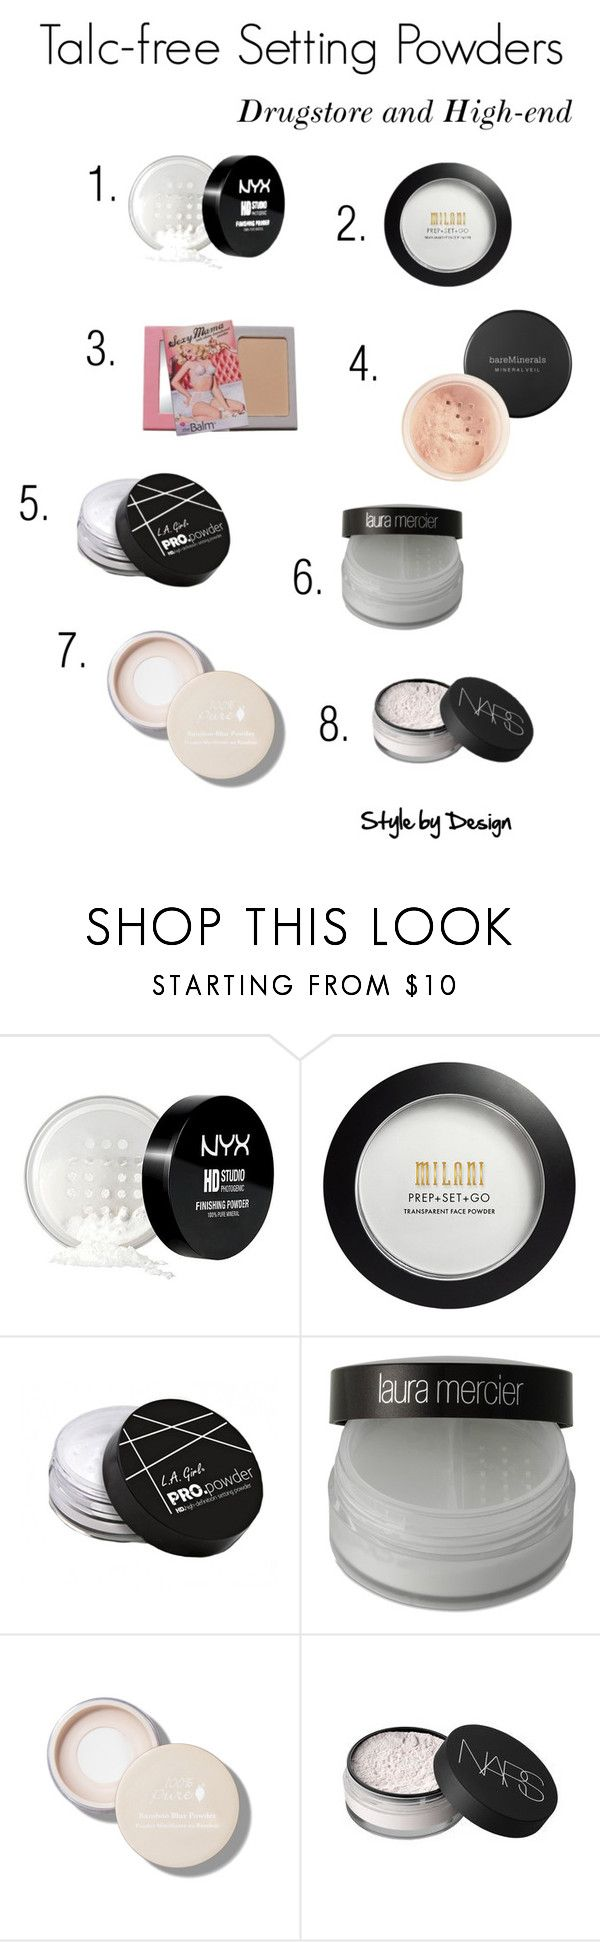 Talc-free Setting Powders by style-bydesign on Polyvore featuring beauty, Bare Escentuals, Laura Mercier, NYX, NARS Cosmetics, L.A. Girl and TheBalm